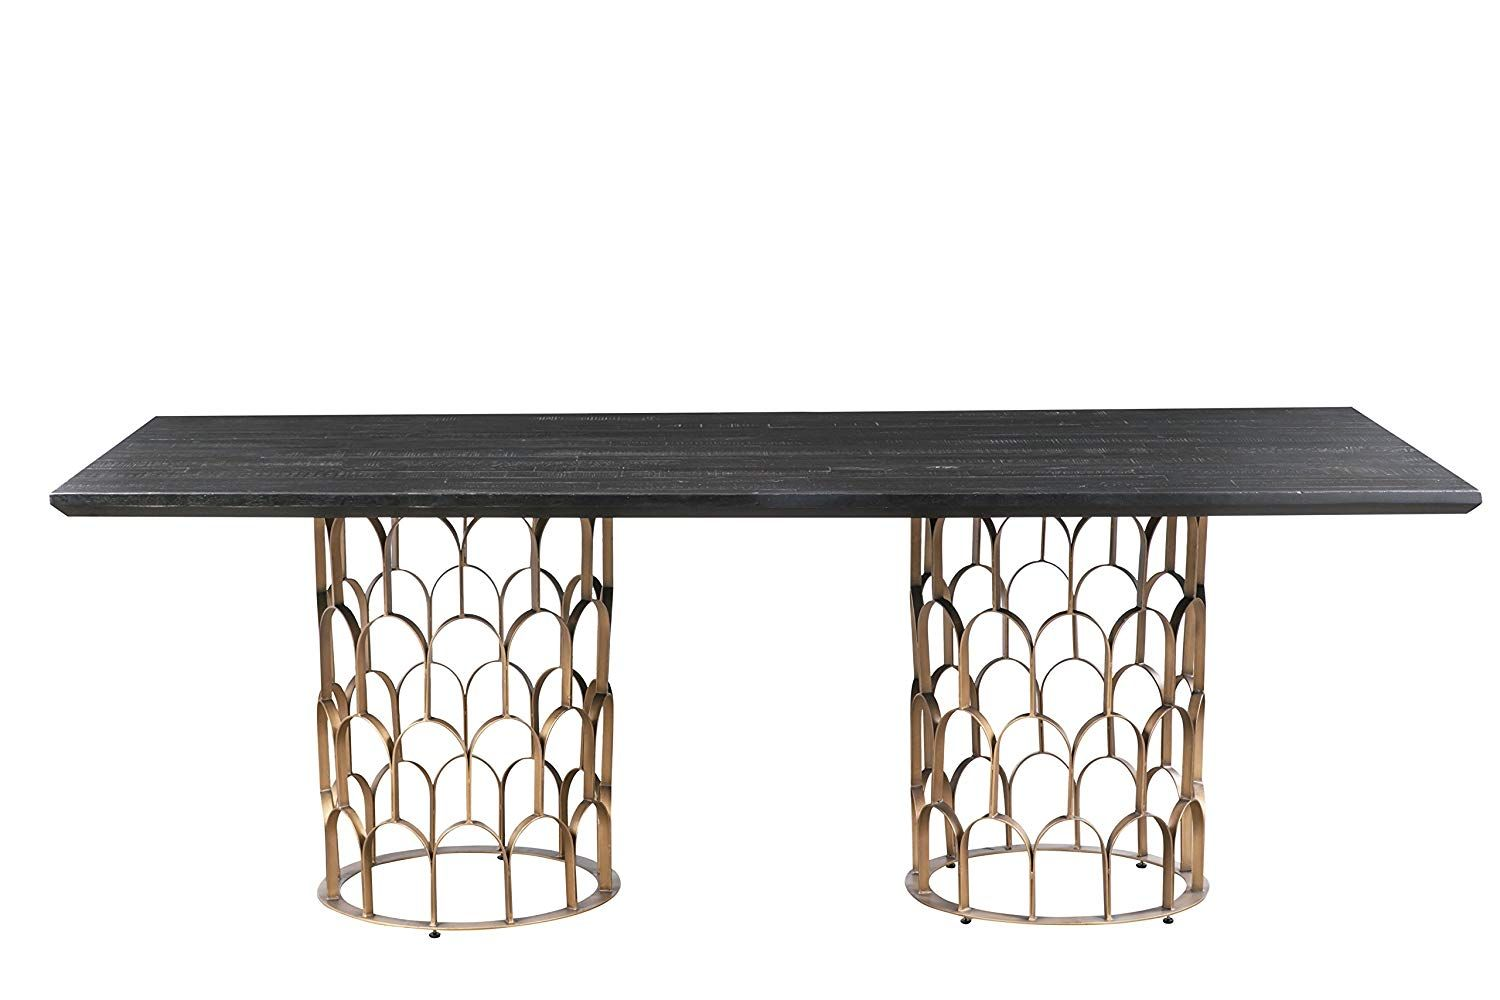 Tov Furniture Tov D7067 The Gatsby Collection Rustic Art Deco Rectangular Wood Dining Table Dark Dining Table Dining Table In Kitchen Concrete Dining Table